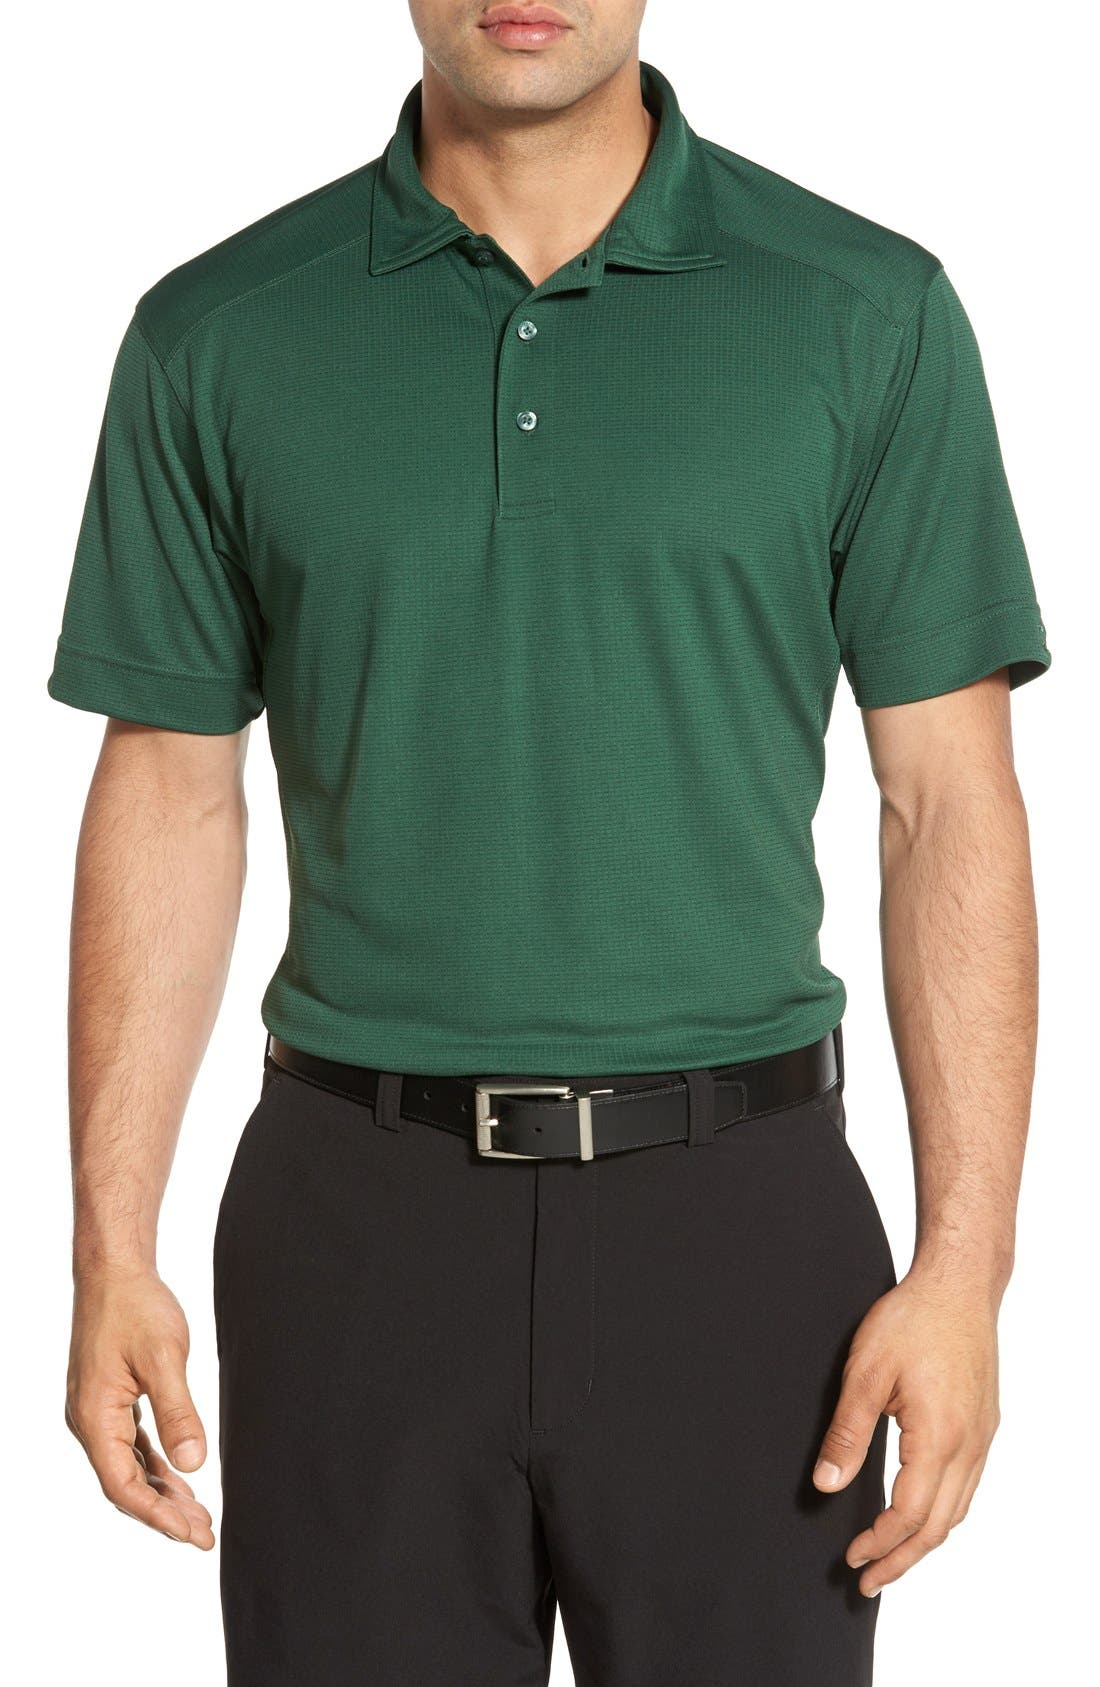 Alternate Image 1 Selected - Cutter & Buck Genre DryTec Moisture Wicking Polo